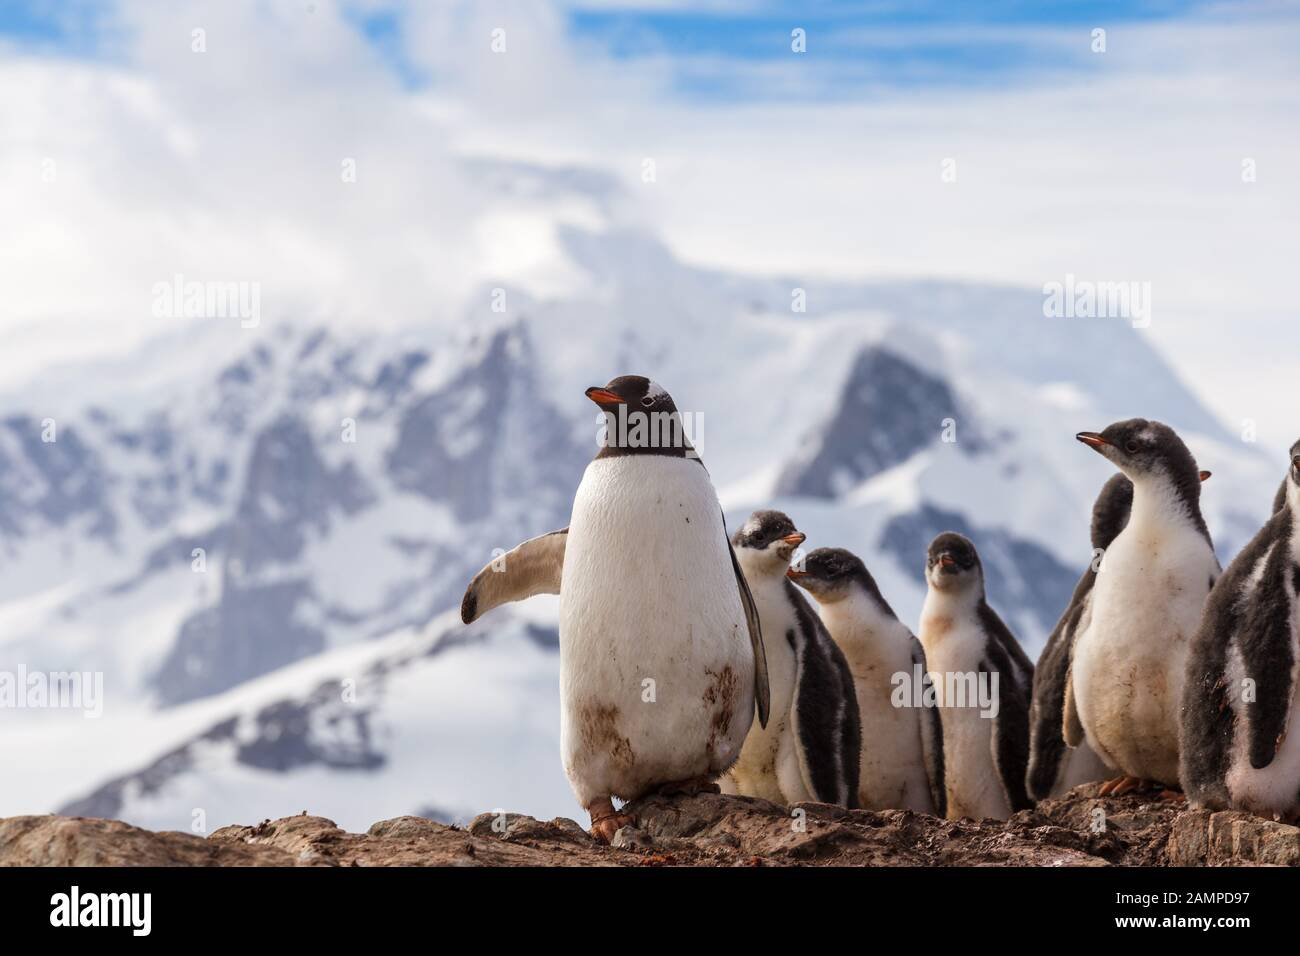 Group of chick penguins on the stone nest on the Antarctica background. Gentoo baby, Argentine Islands antarctic region Stock Photo